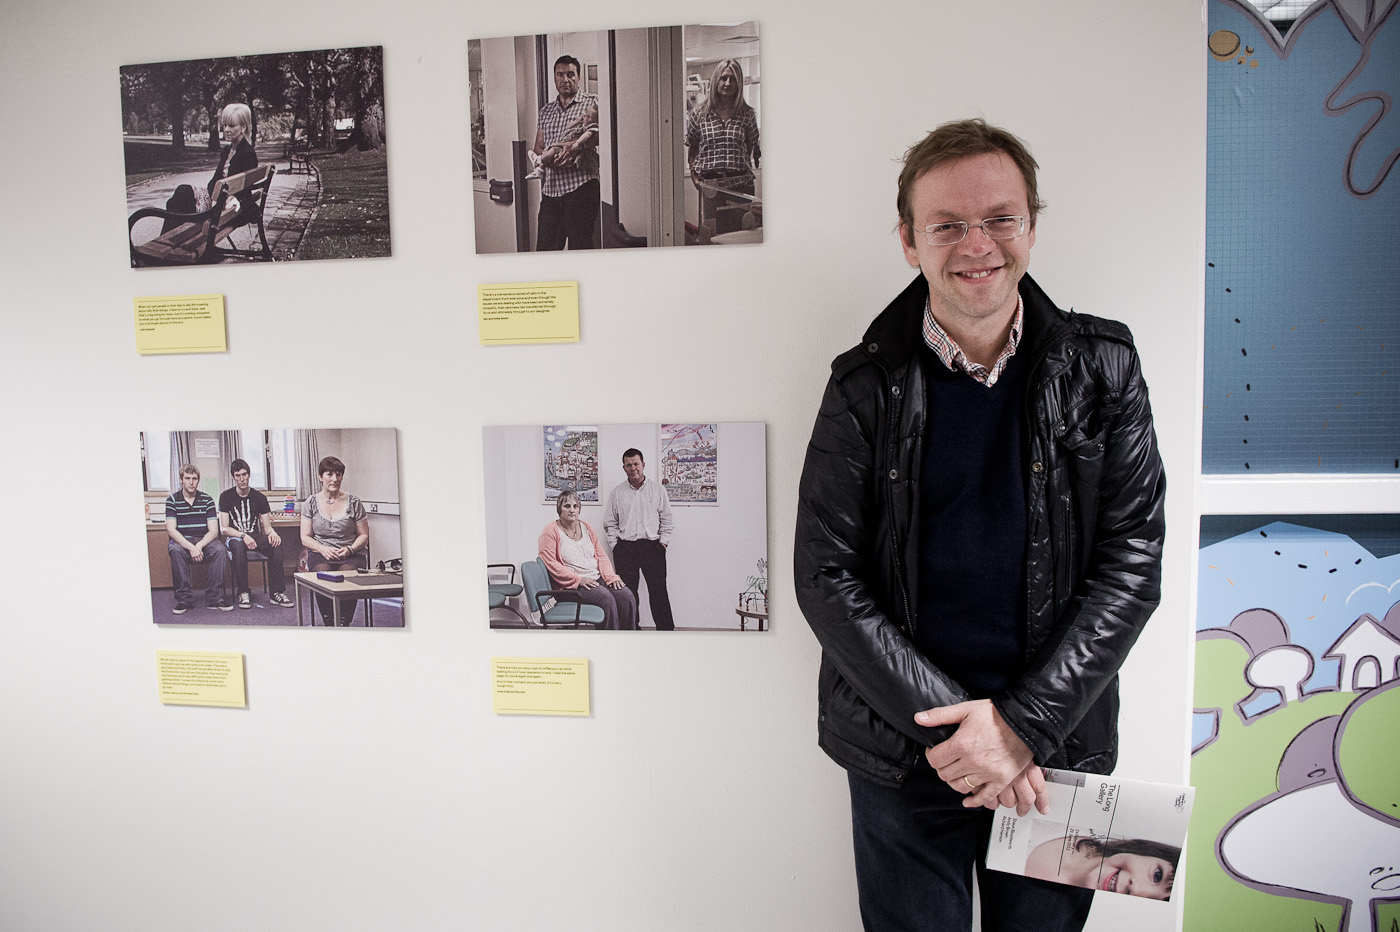 Photo copyright: Richard Hanson (0793 908 1208) richard@hansonphoto.co.uk You're not Alone opening night, The Children's Hospital, Sheffield. Commissioned by Cat at the TCH Charity. 23.2.12 Original job no: 2862